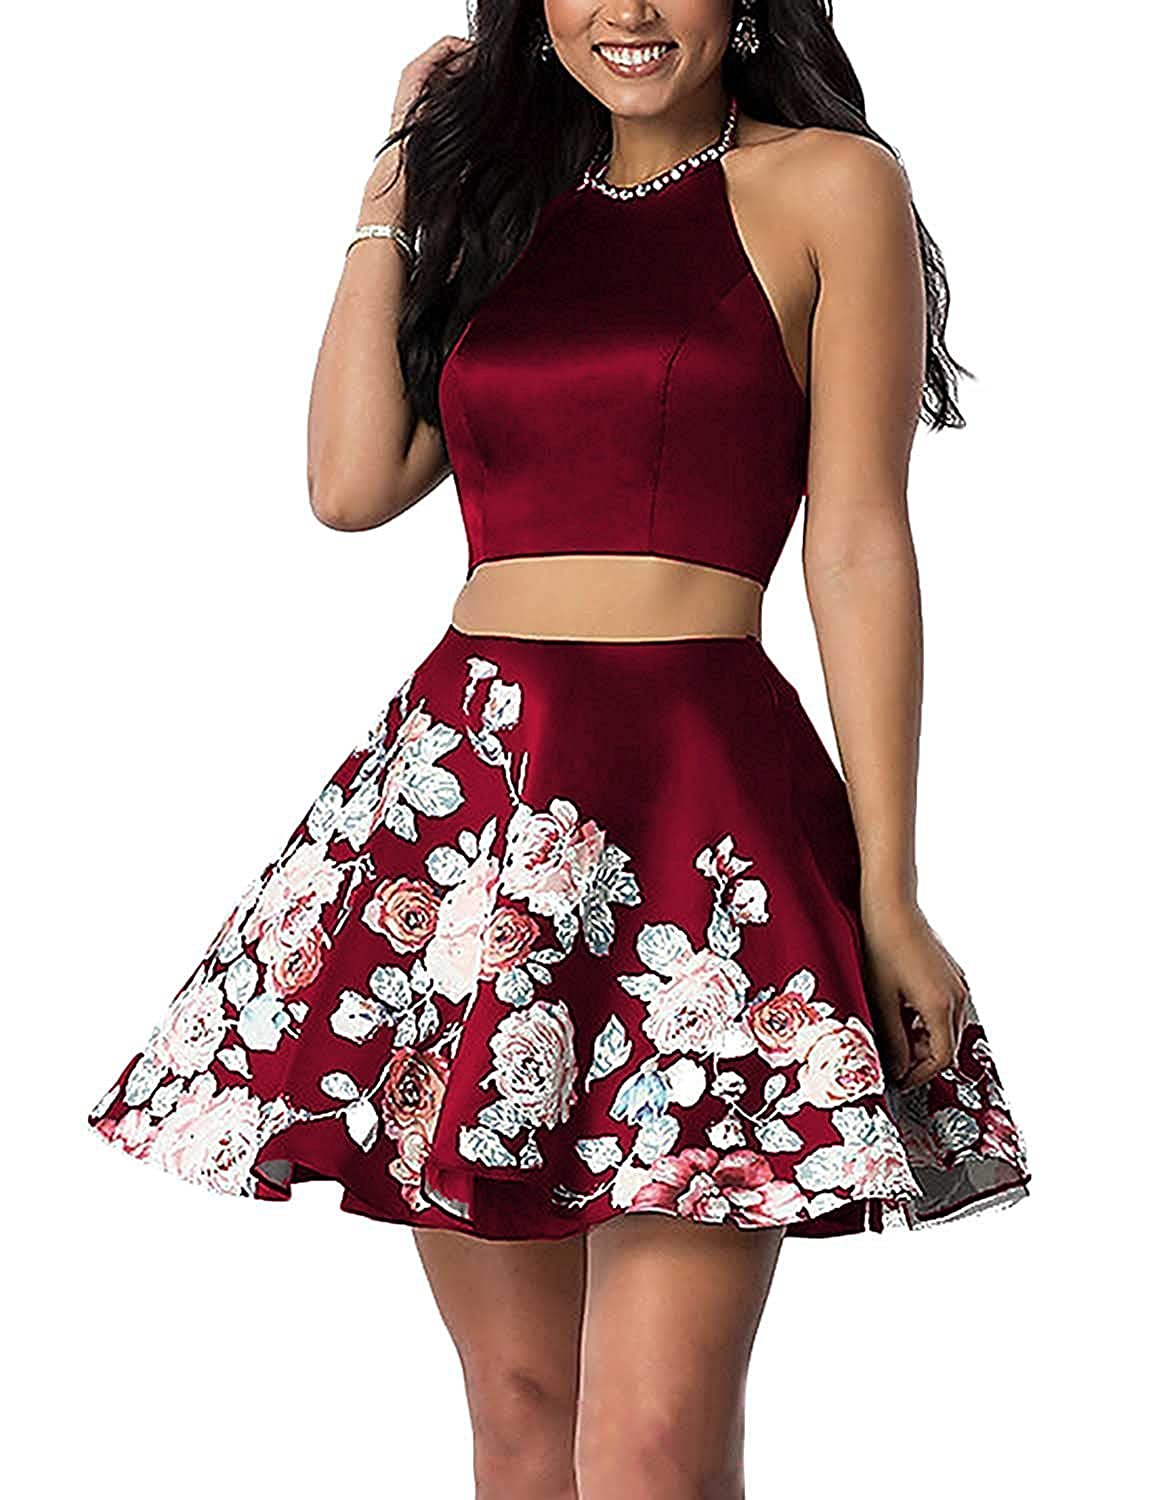 821b62525a3 Material Satin Two Pieces Floral Print Dress Halter Neckline and Decorate  with Beads Zipper Back This gorgeous dress is Perfect for Homecoming